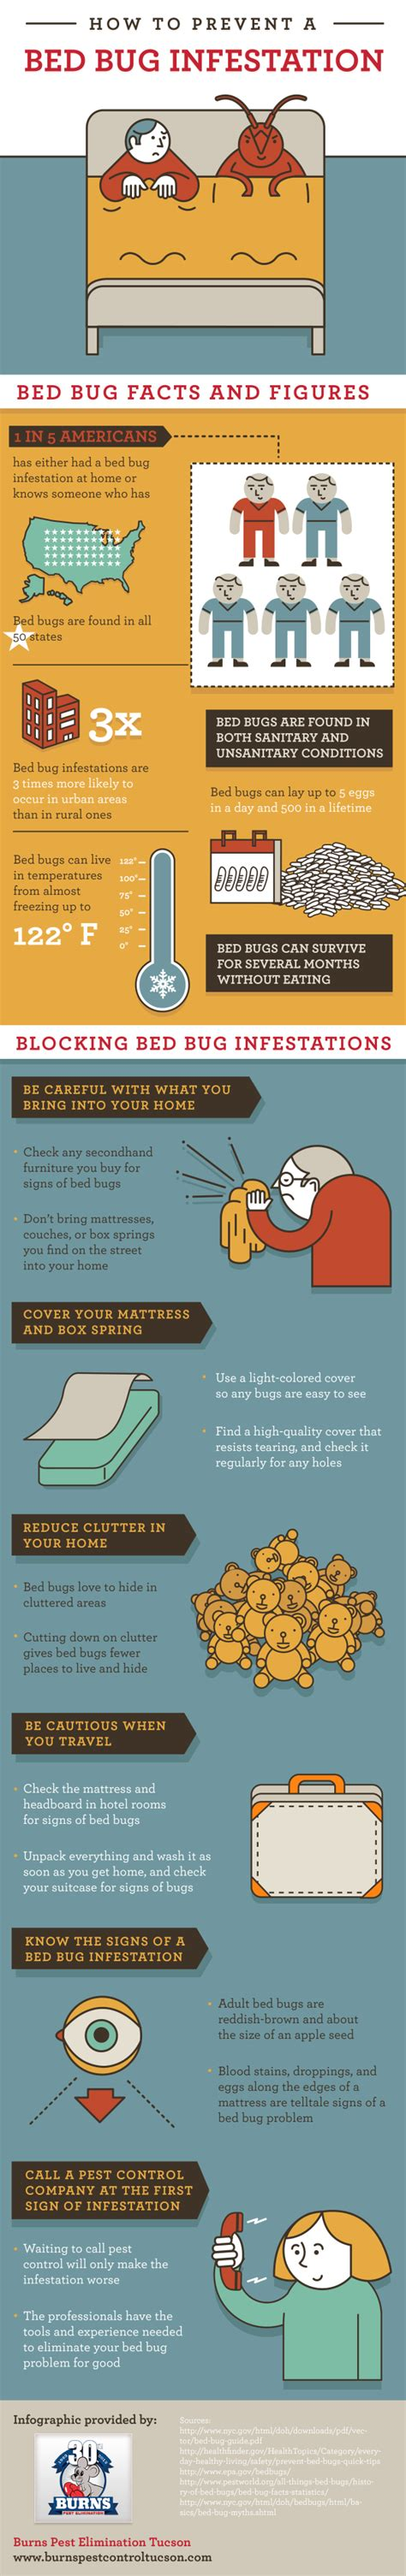 how to fight bed bugs how to prevent a bed bug infestation infographic